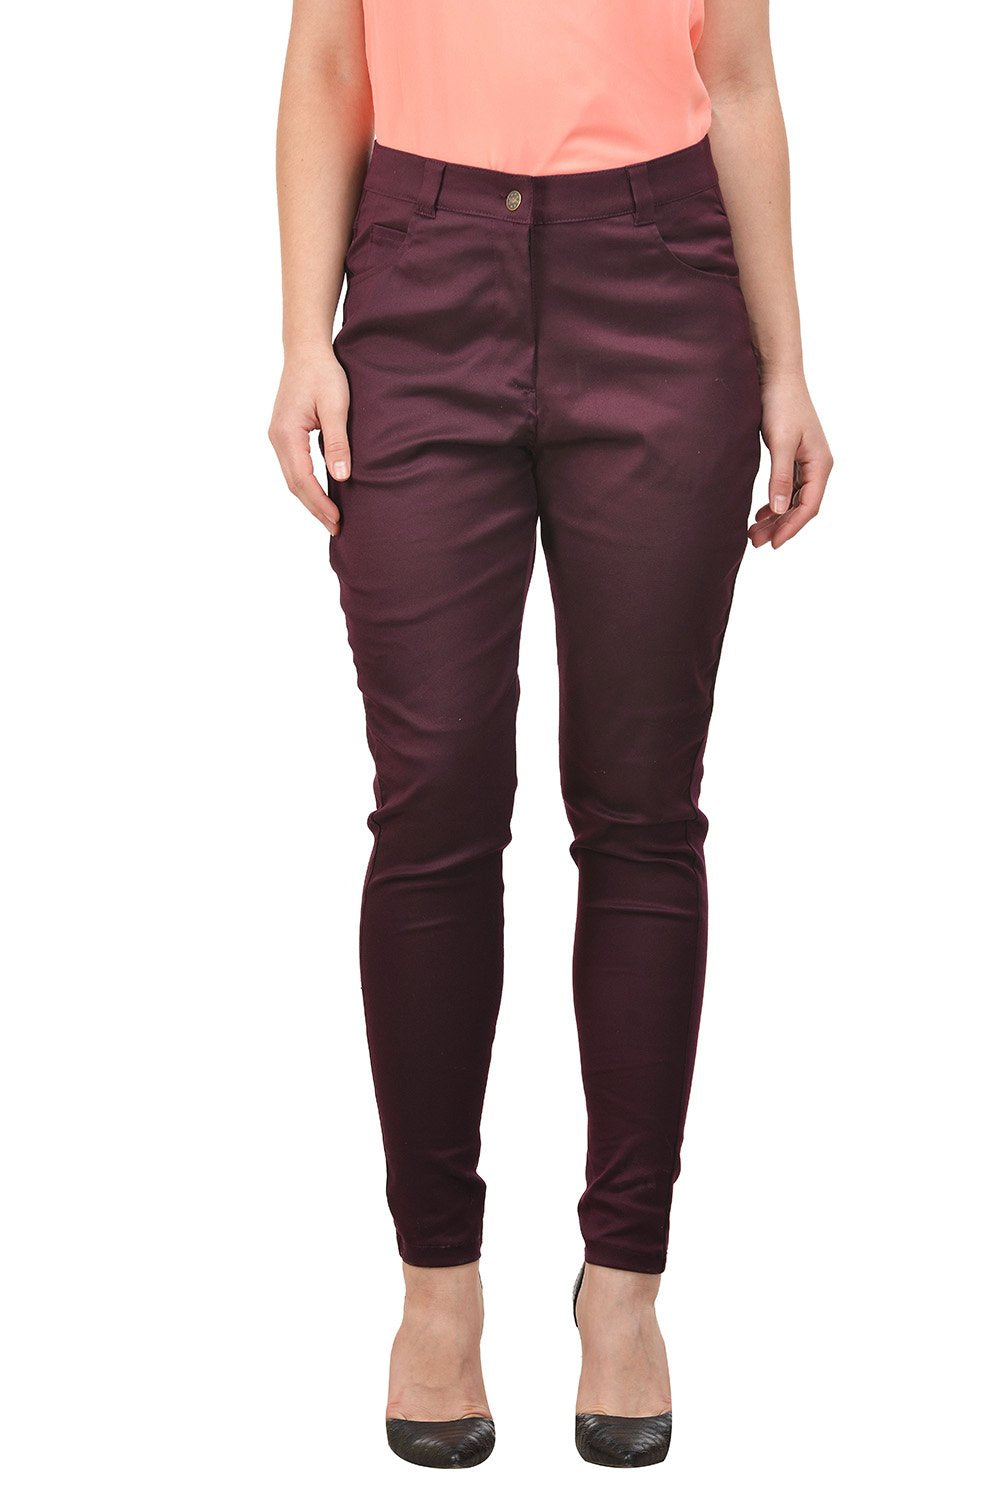 Castle Wine Cotton Lycra Pants